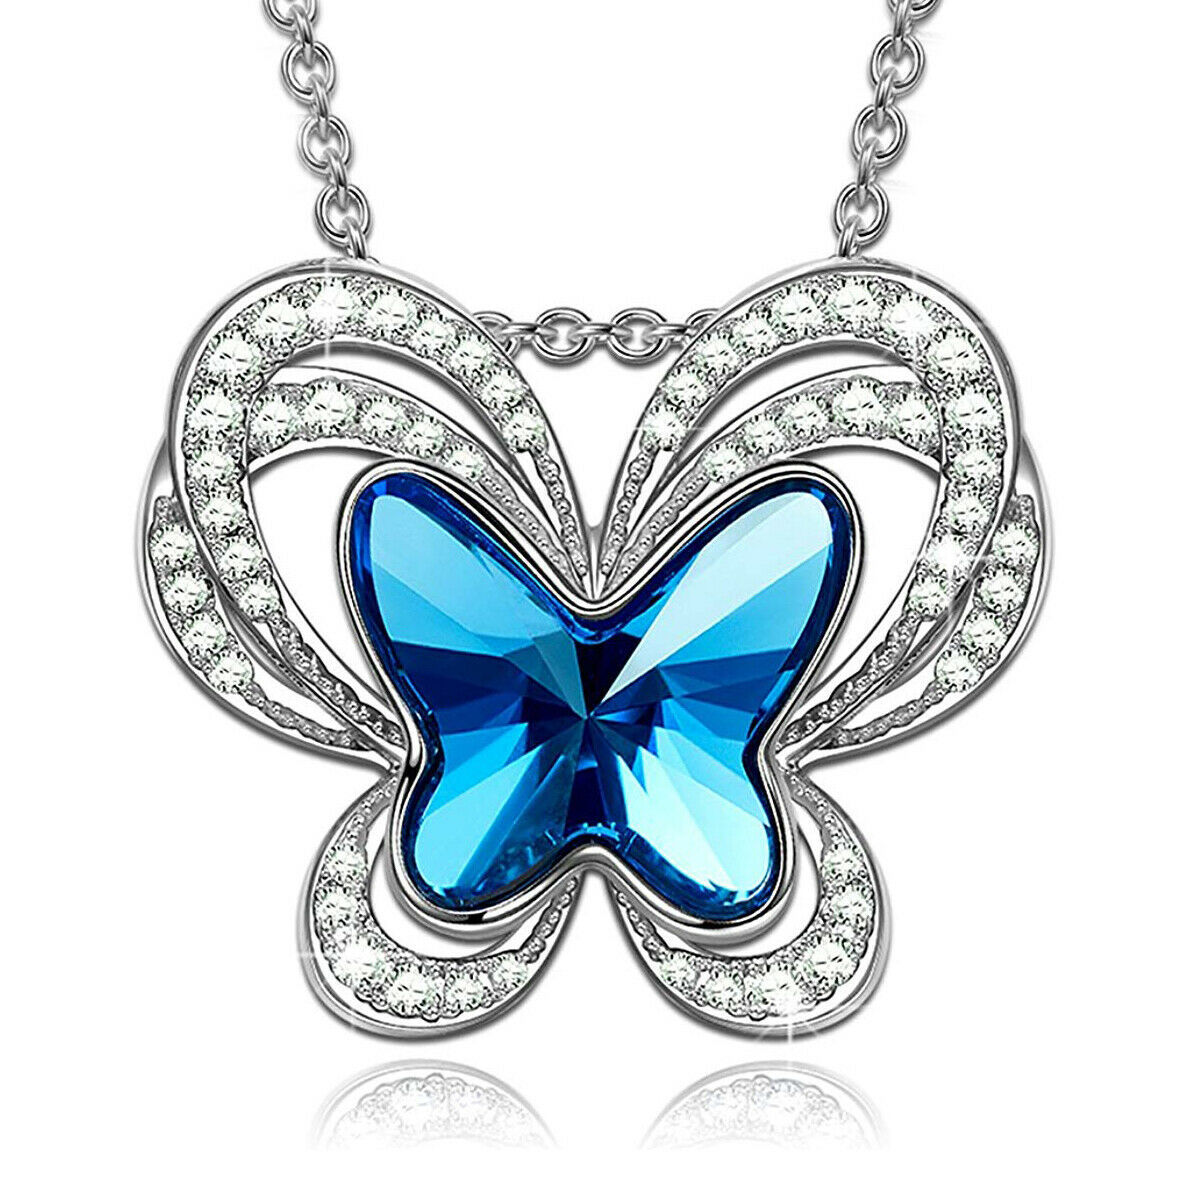 Primary image for Necklace Choker Aquamarine Blue W Swarovski Crystal Elements ExNoVo Butterfly